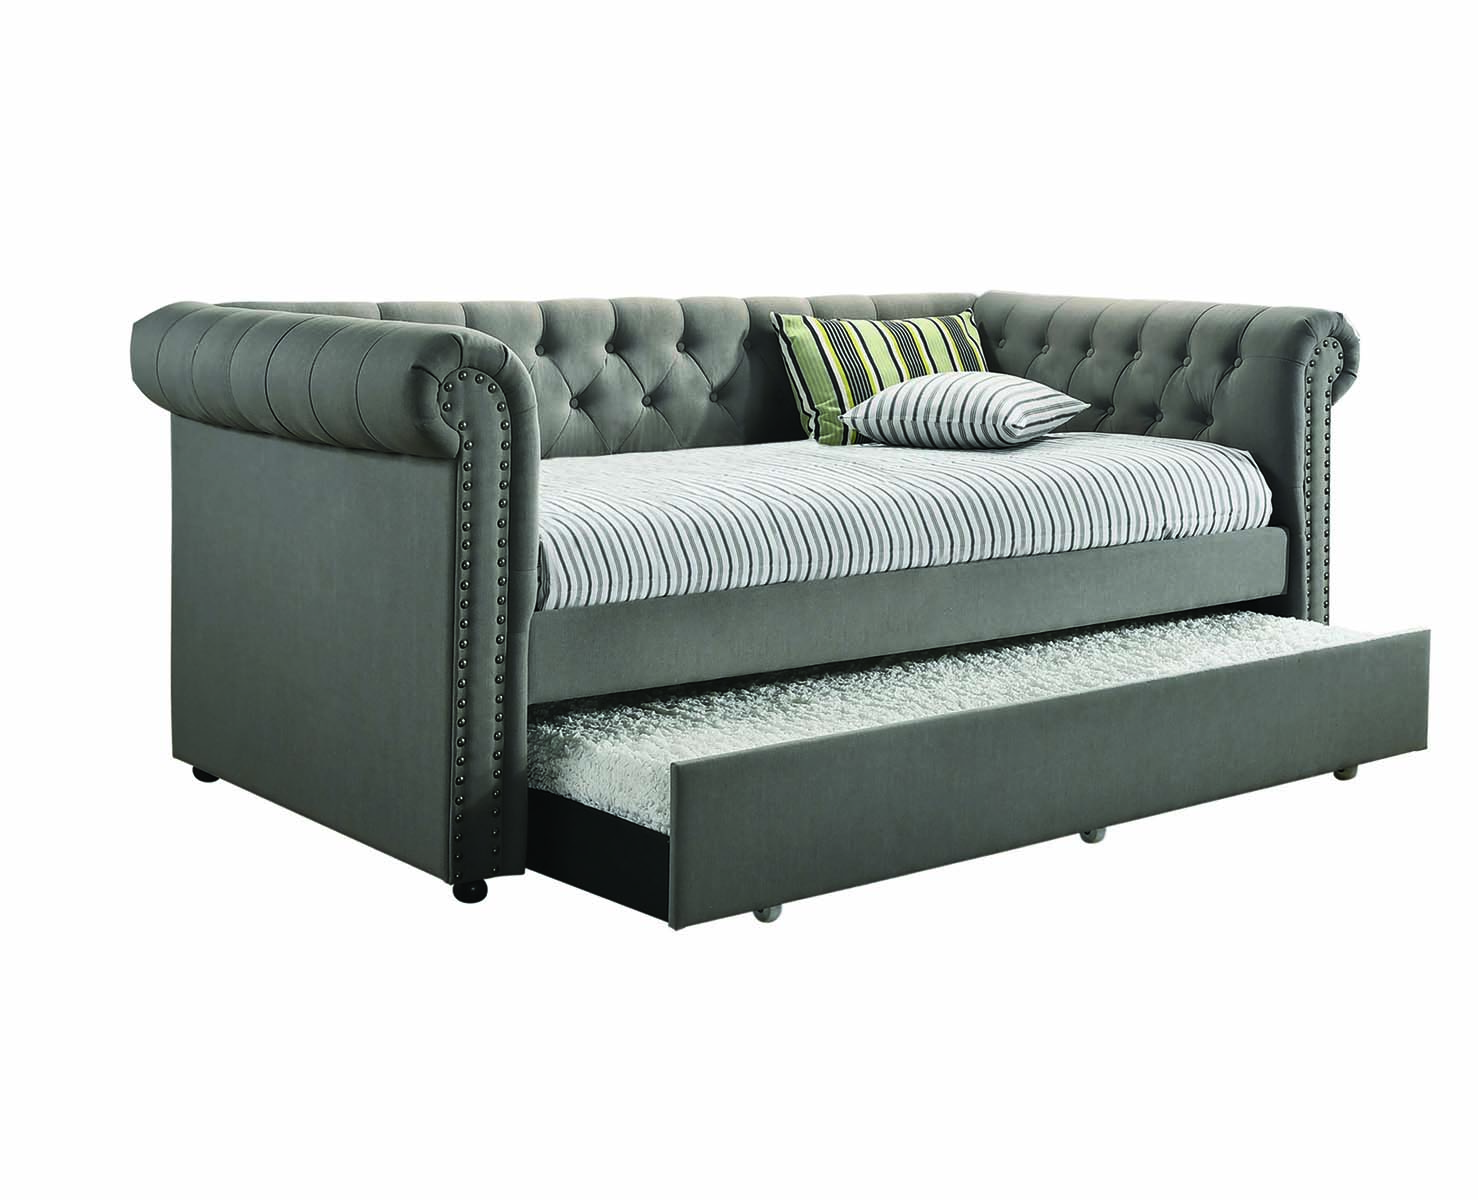 Coaster Furniture Kepner Grey Twin Daybed With Trundle